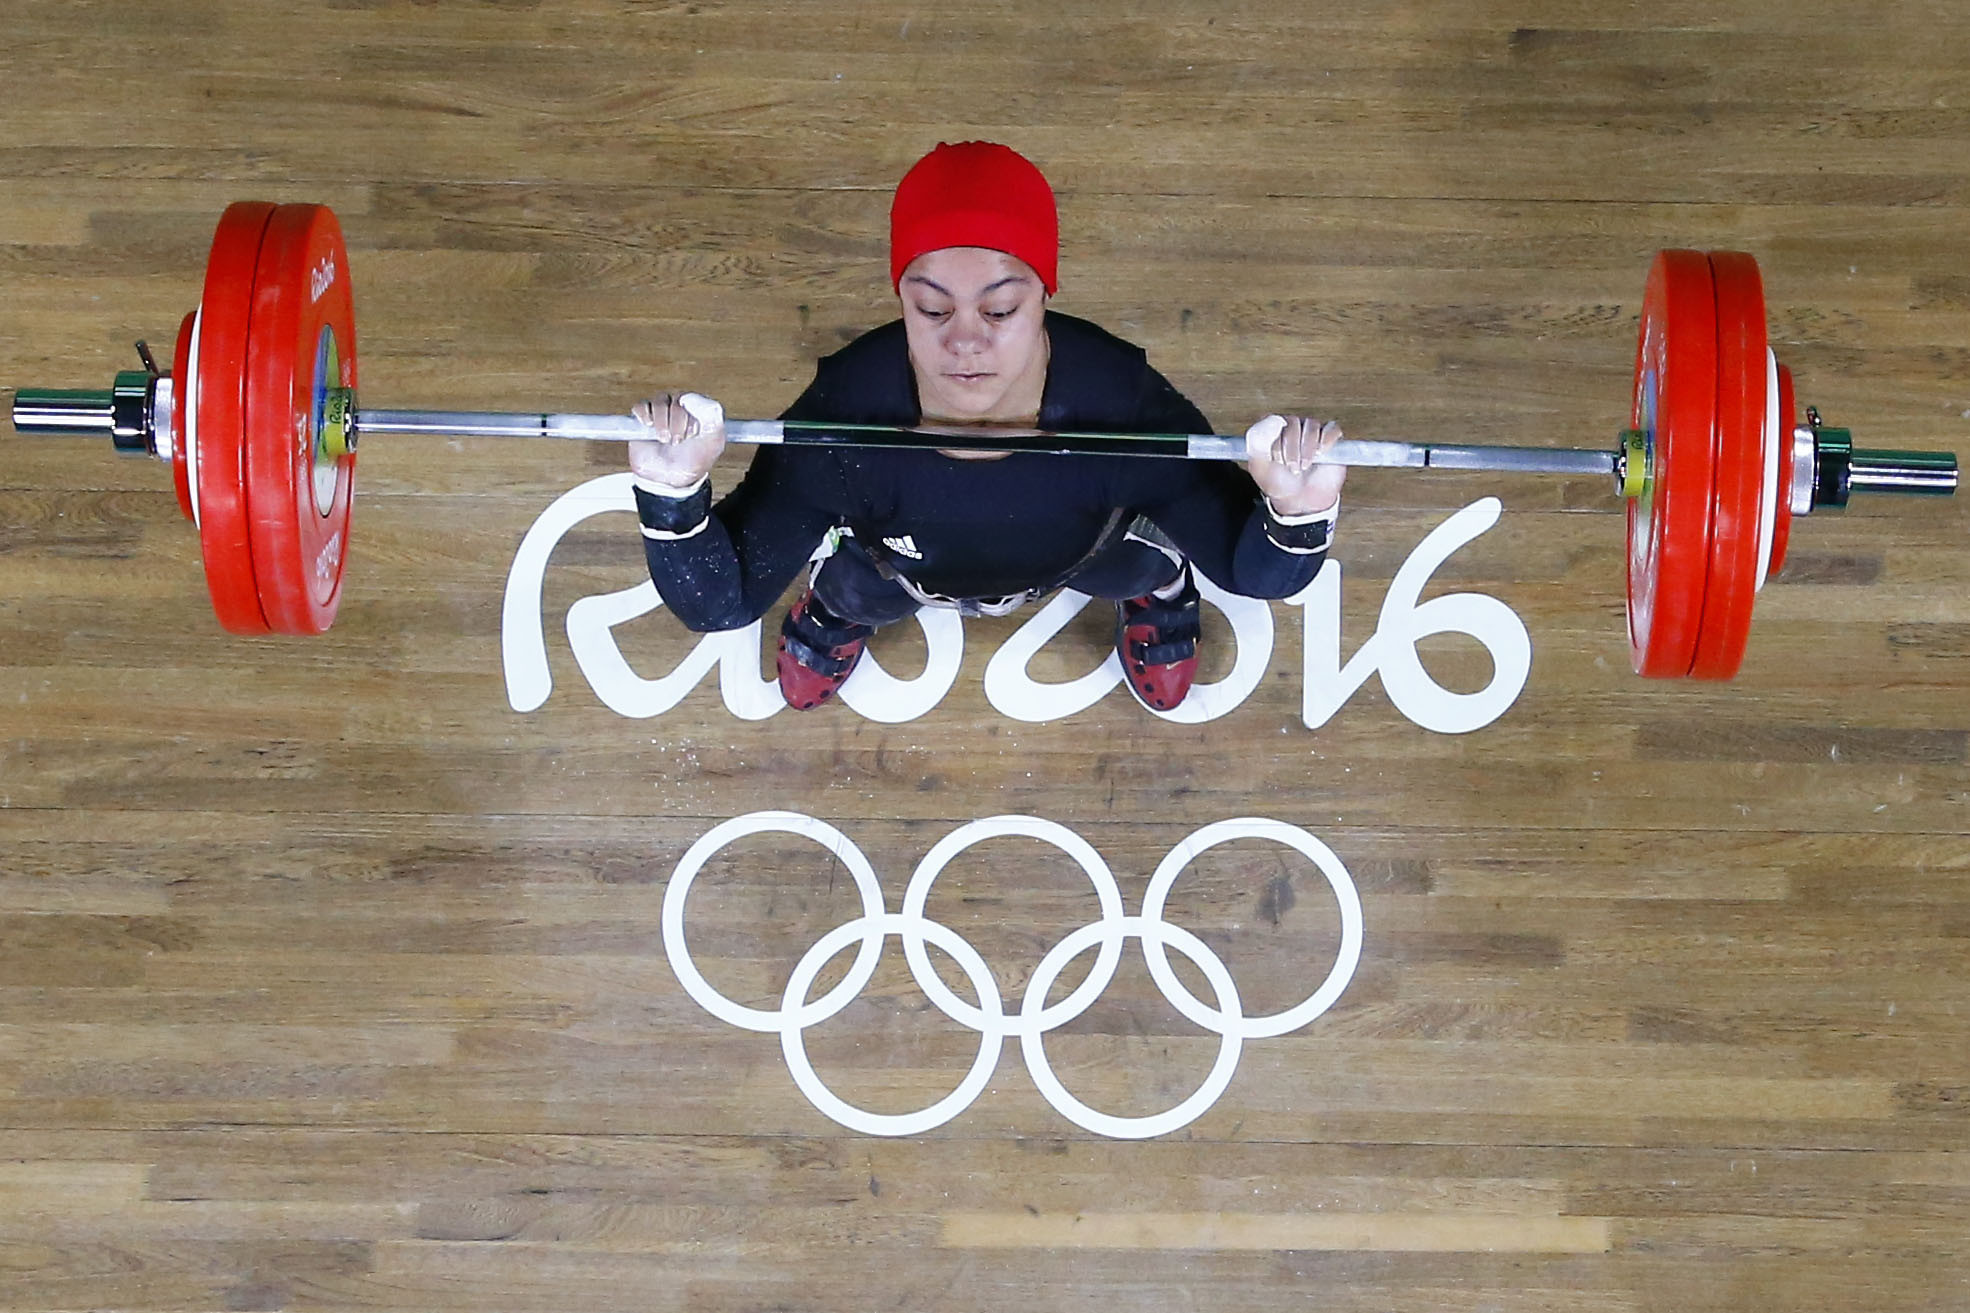 Sara Ahmed's Olympic medal has helped inspire Iran to launch their women's weightlifting programme ©Getty Images